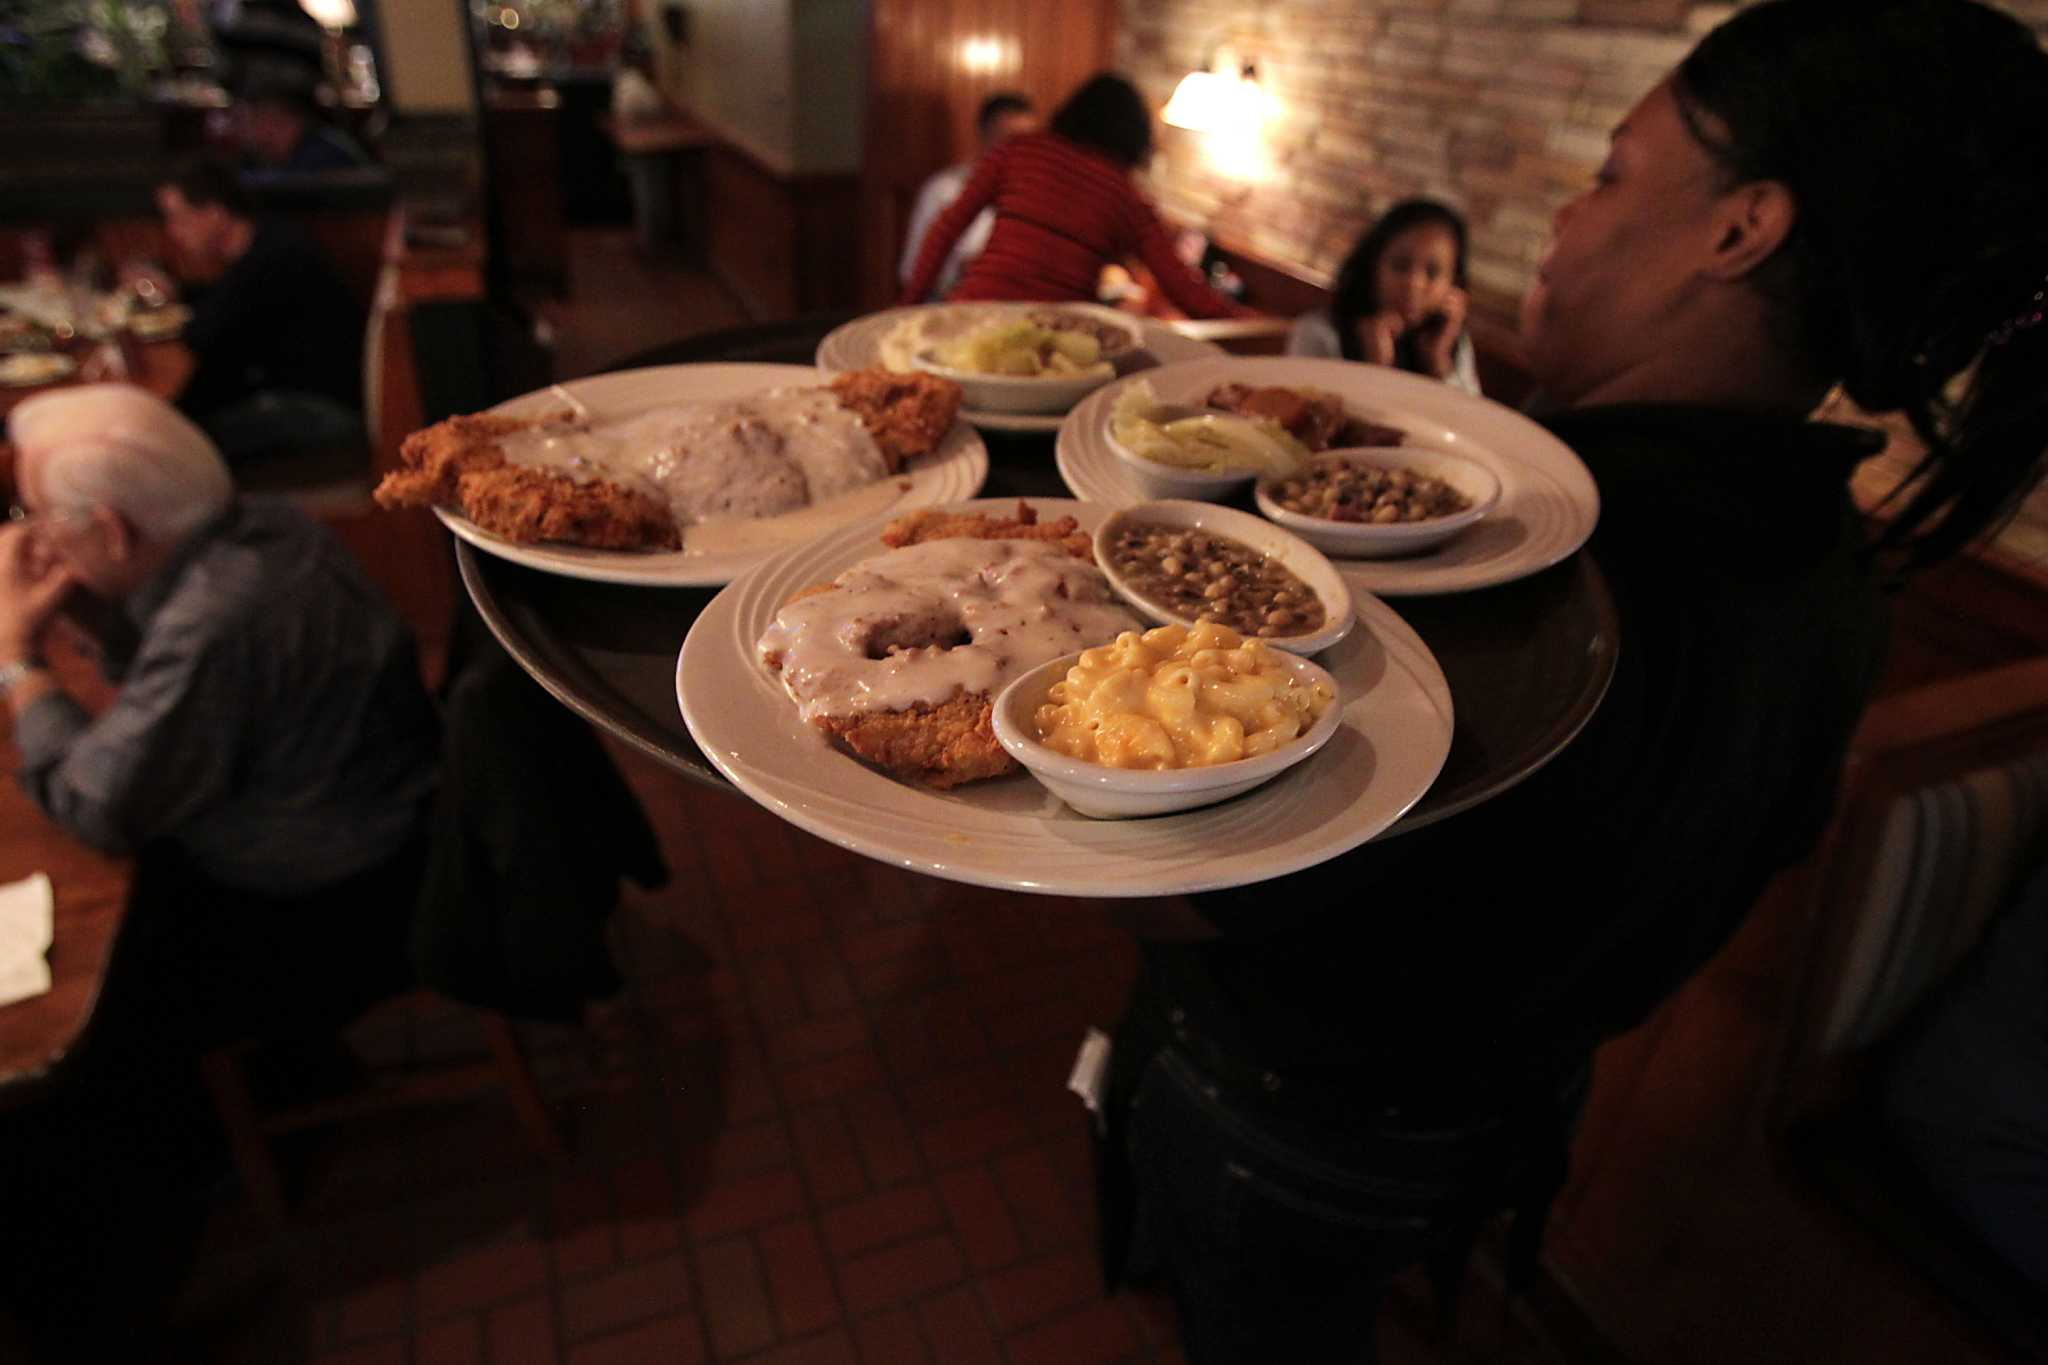 Inspectors find unsanitary conditions at some local restaurants ...